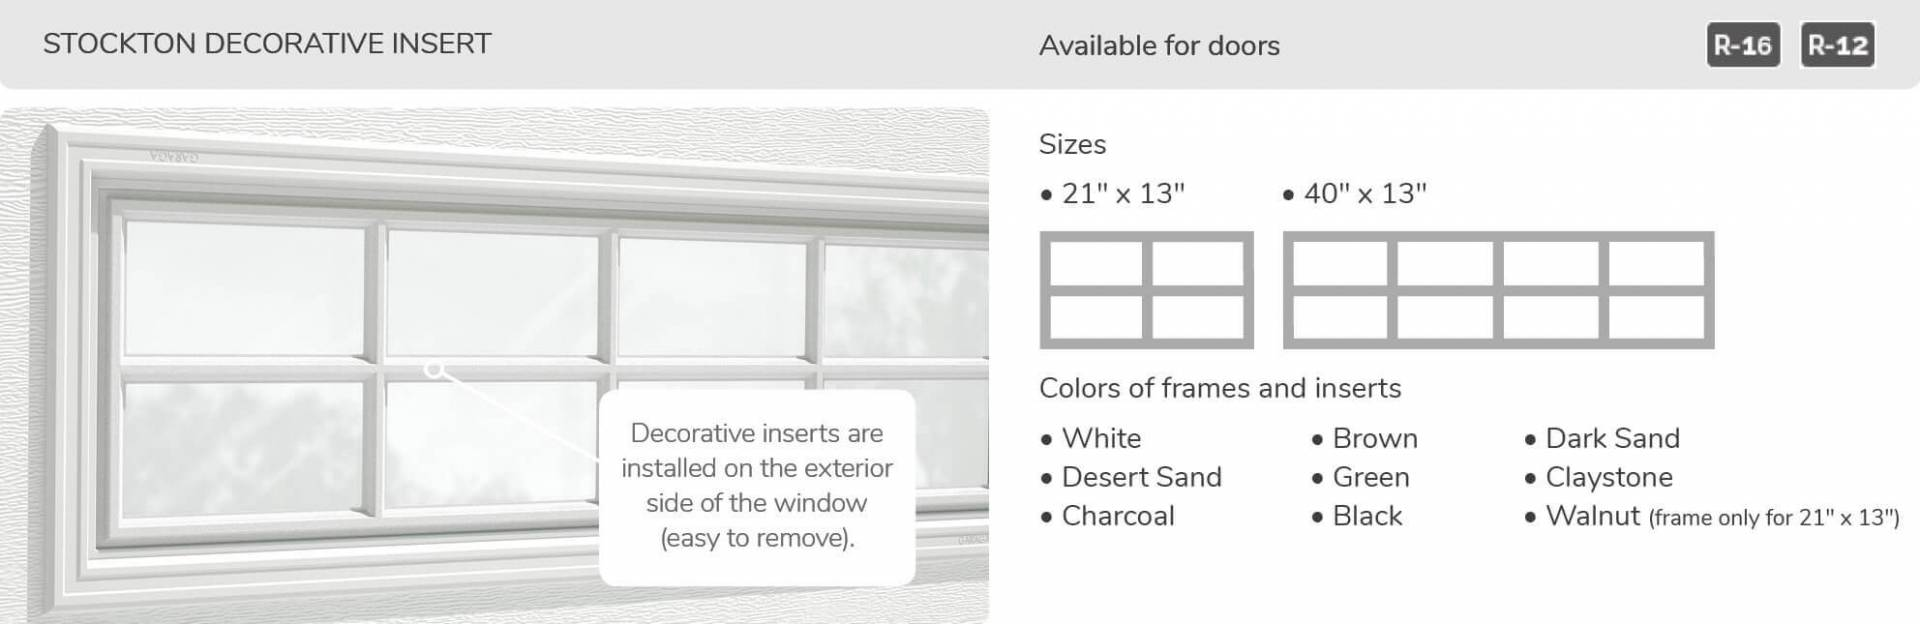 Stockton Decorative Insert, 21' x 13' and 40' x 13', available for door R-16 and R-12